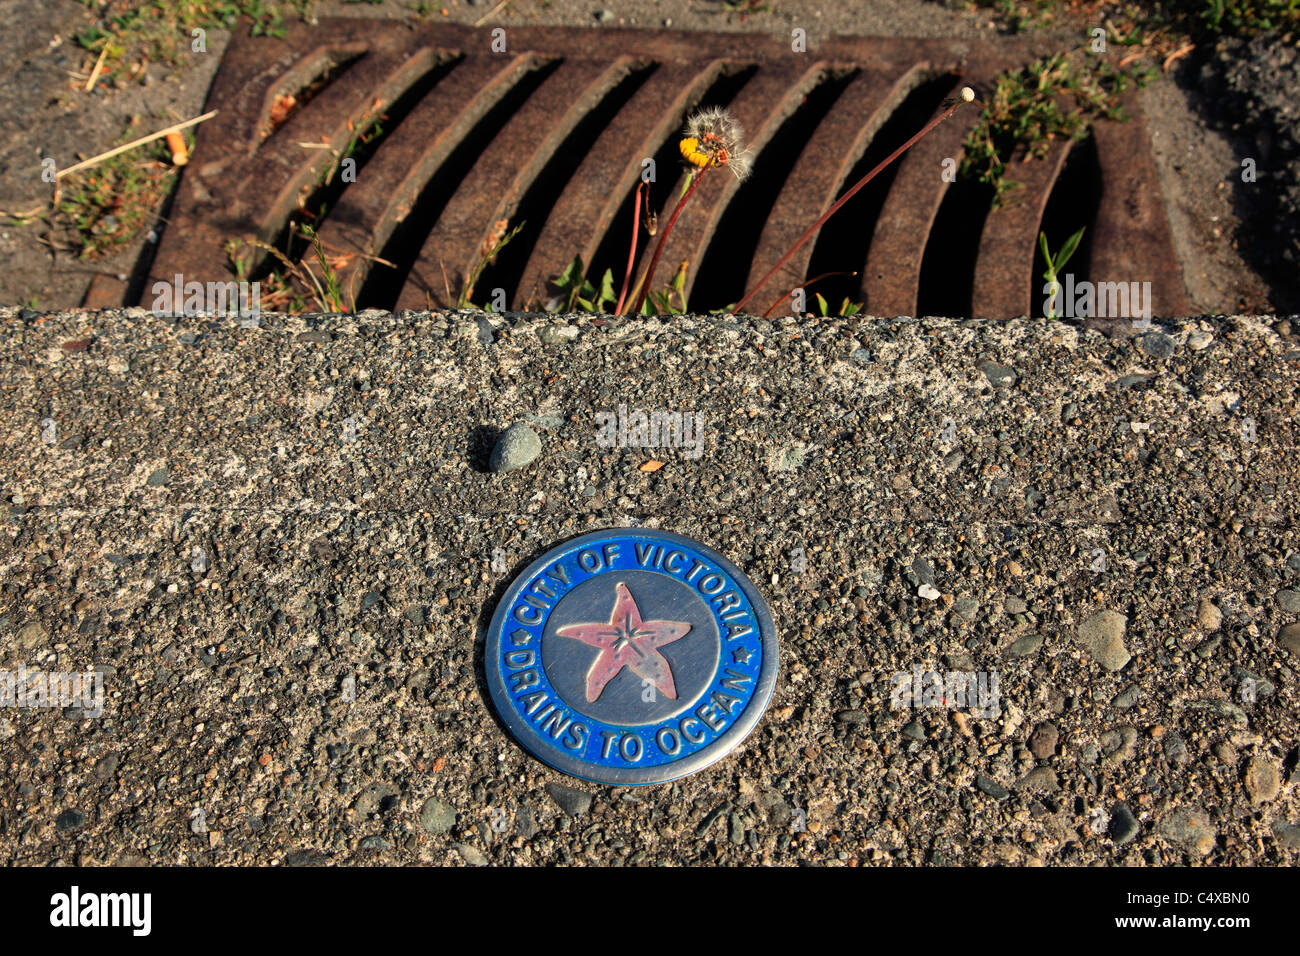 City of Victoria drains to the ocean sign by a sewer grate on Dallas Rd. Victoria BC Canada - Stock Image